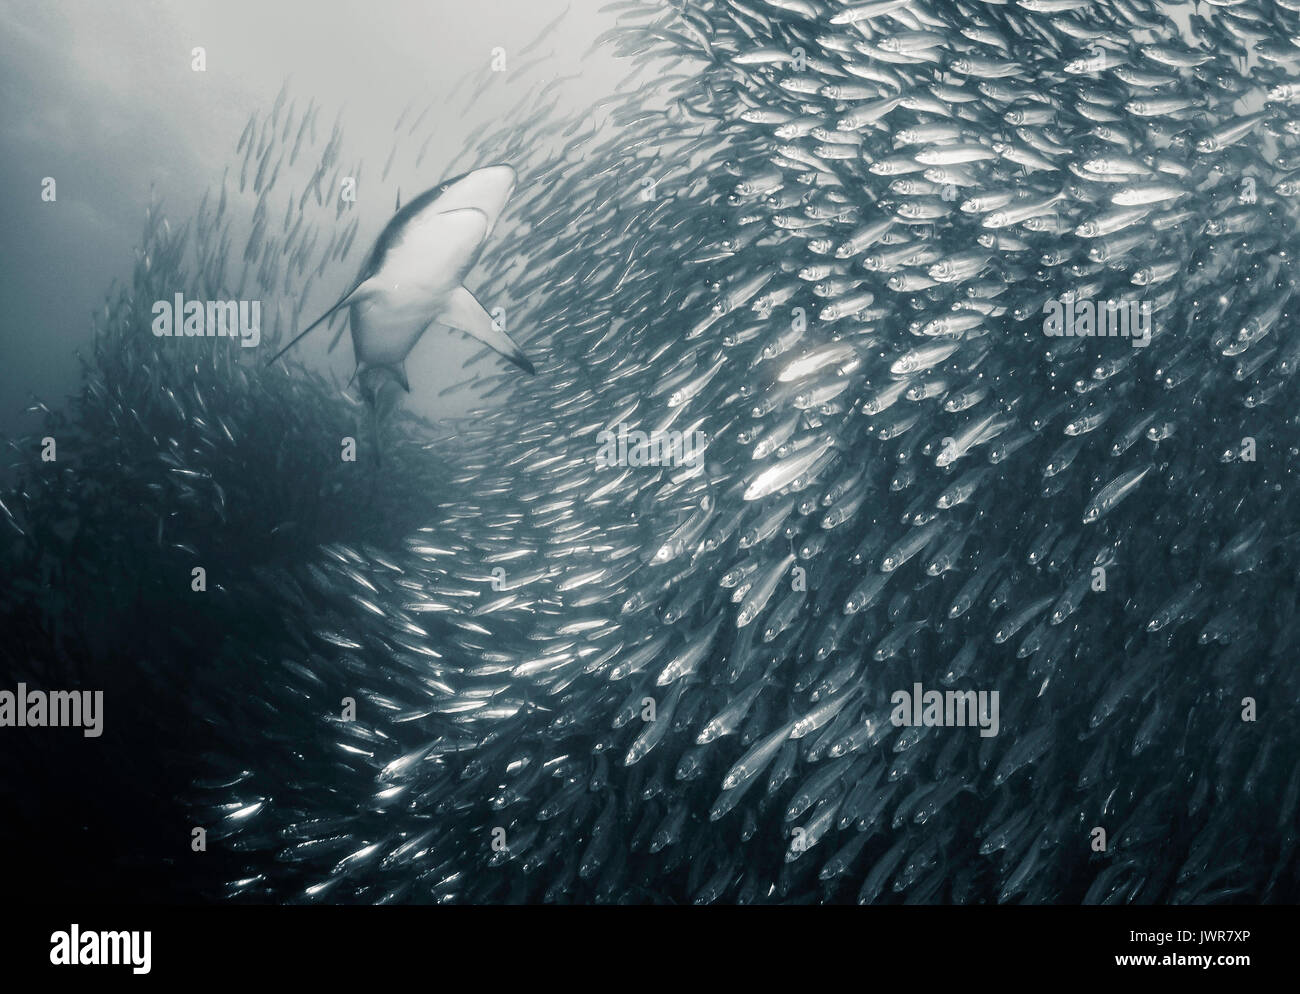 Bronze whaler shark feeding on sardines during the annual sardine run off the east coast of South Africa. - Stock Image